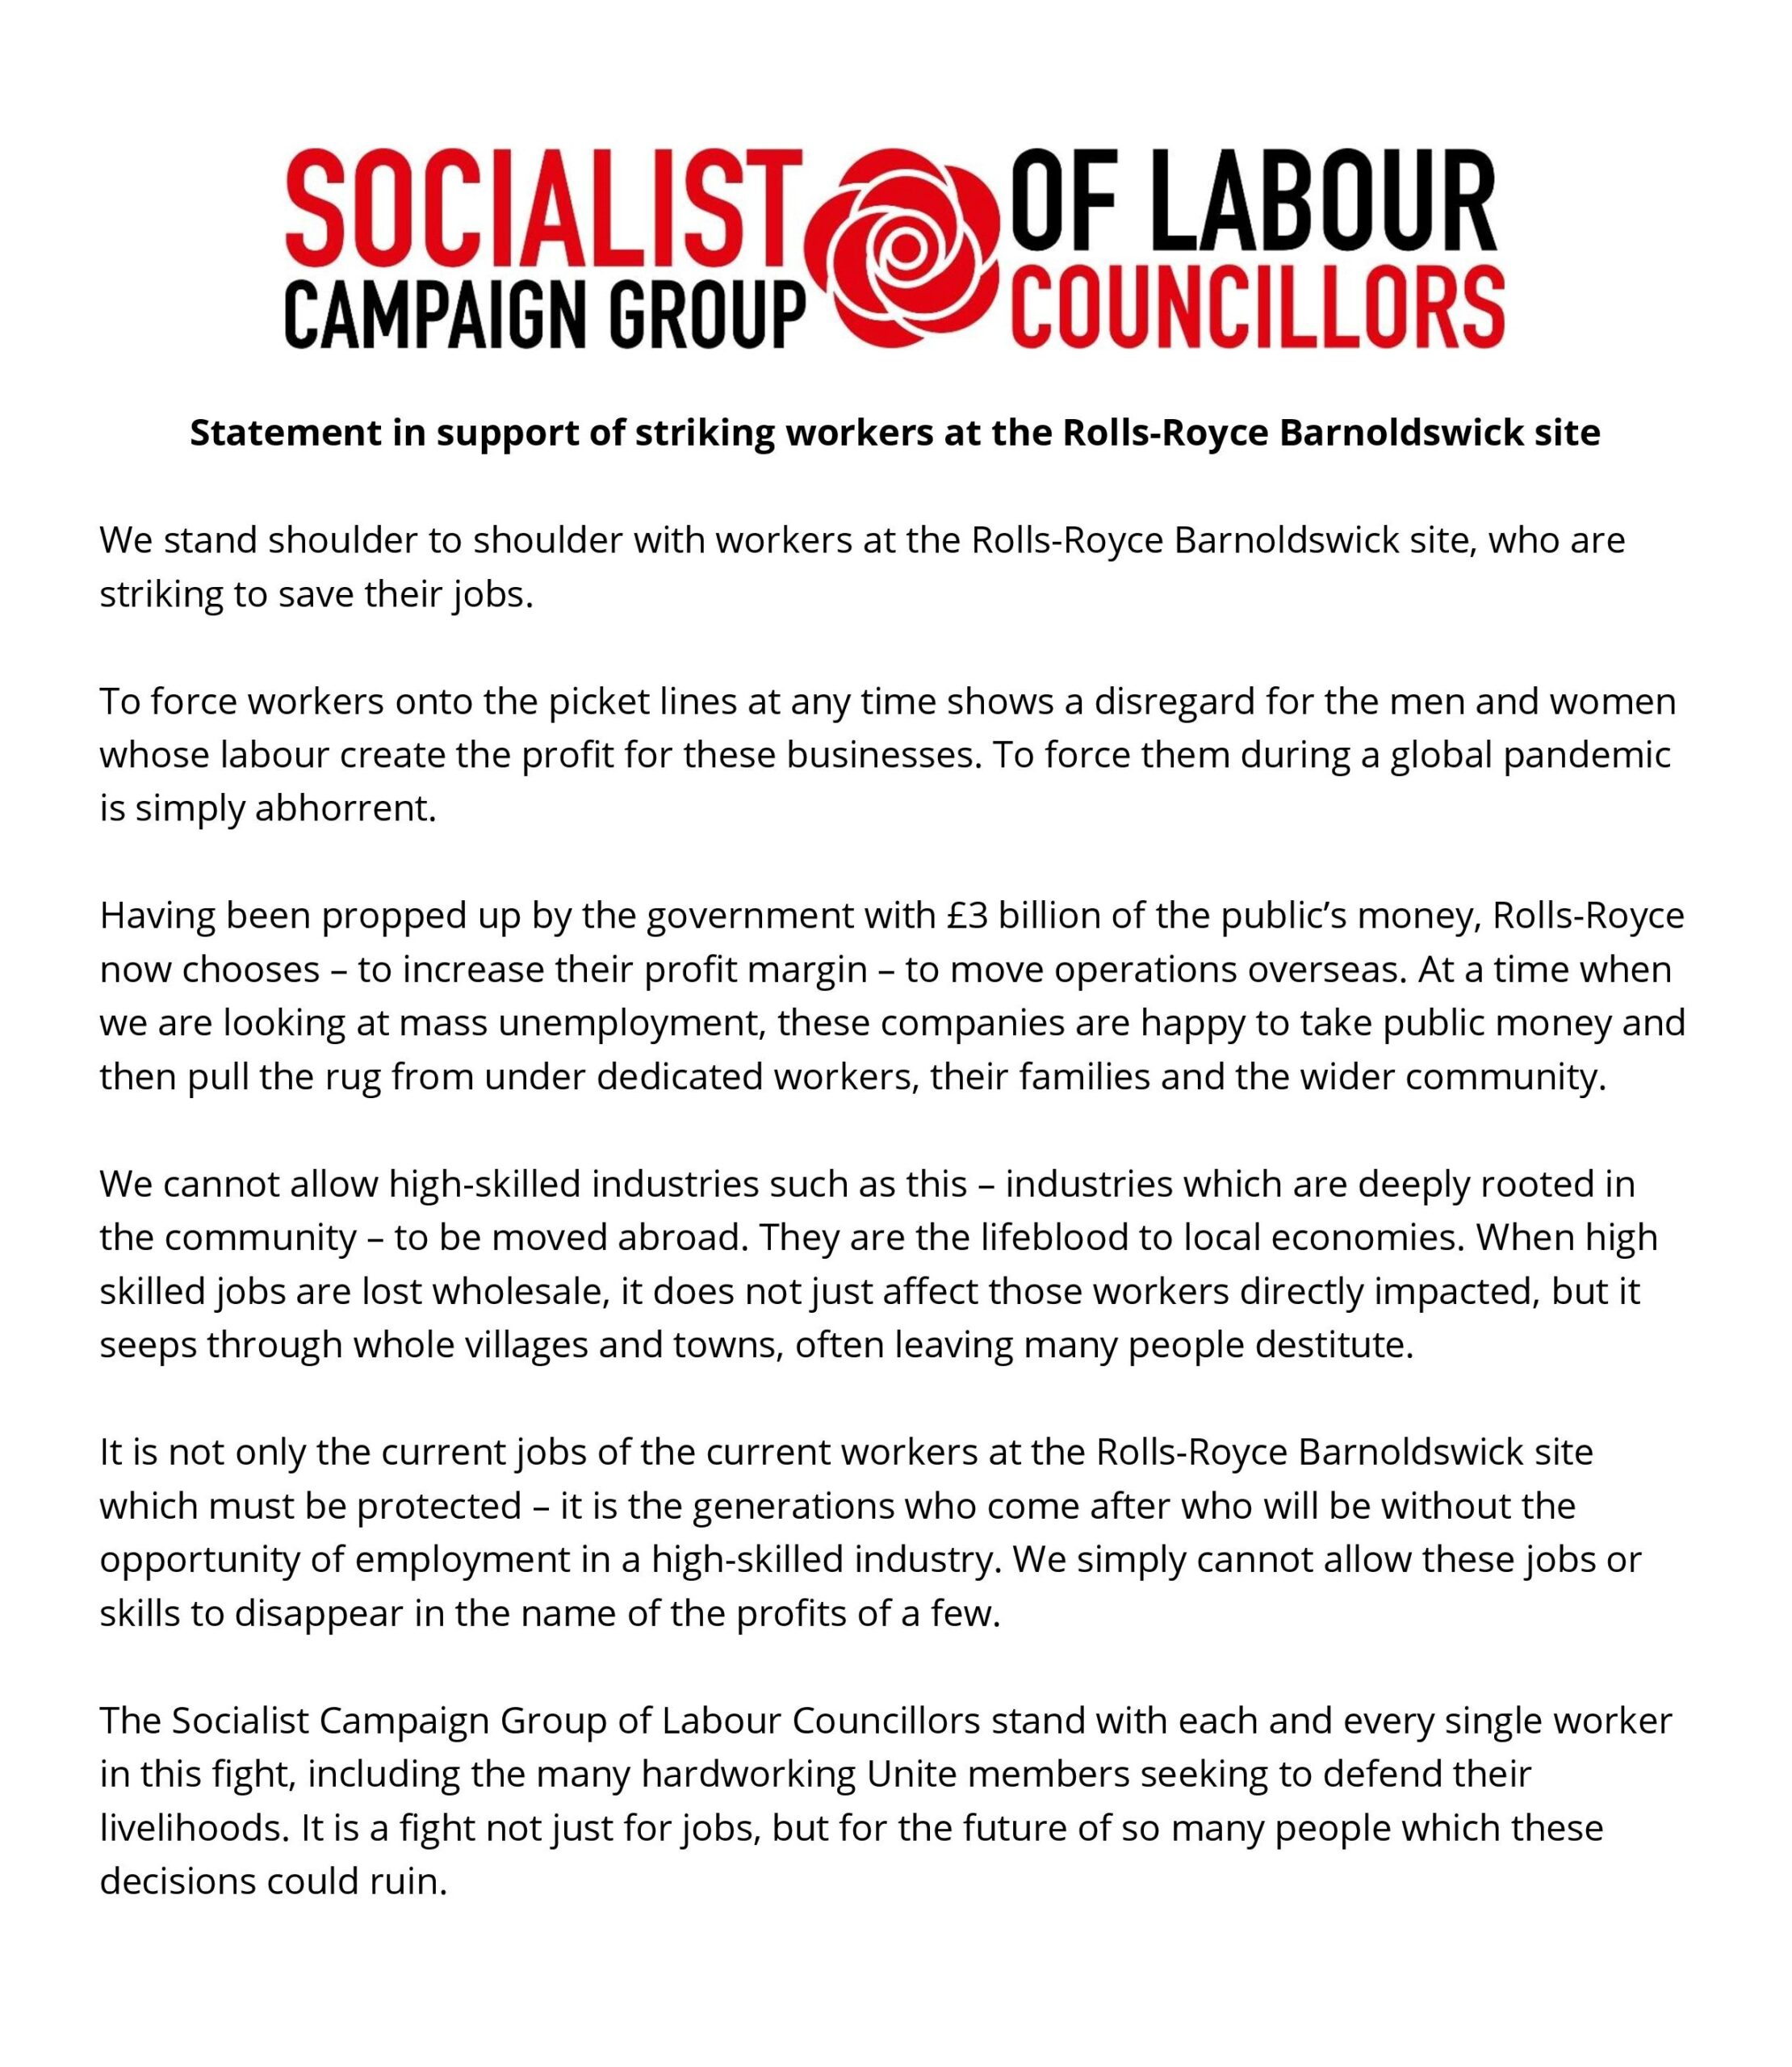 Statement in support of striking workers at the Rolls-Royce Barnoldswick